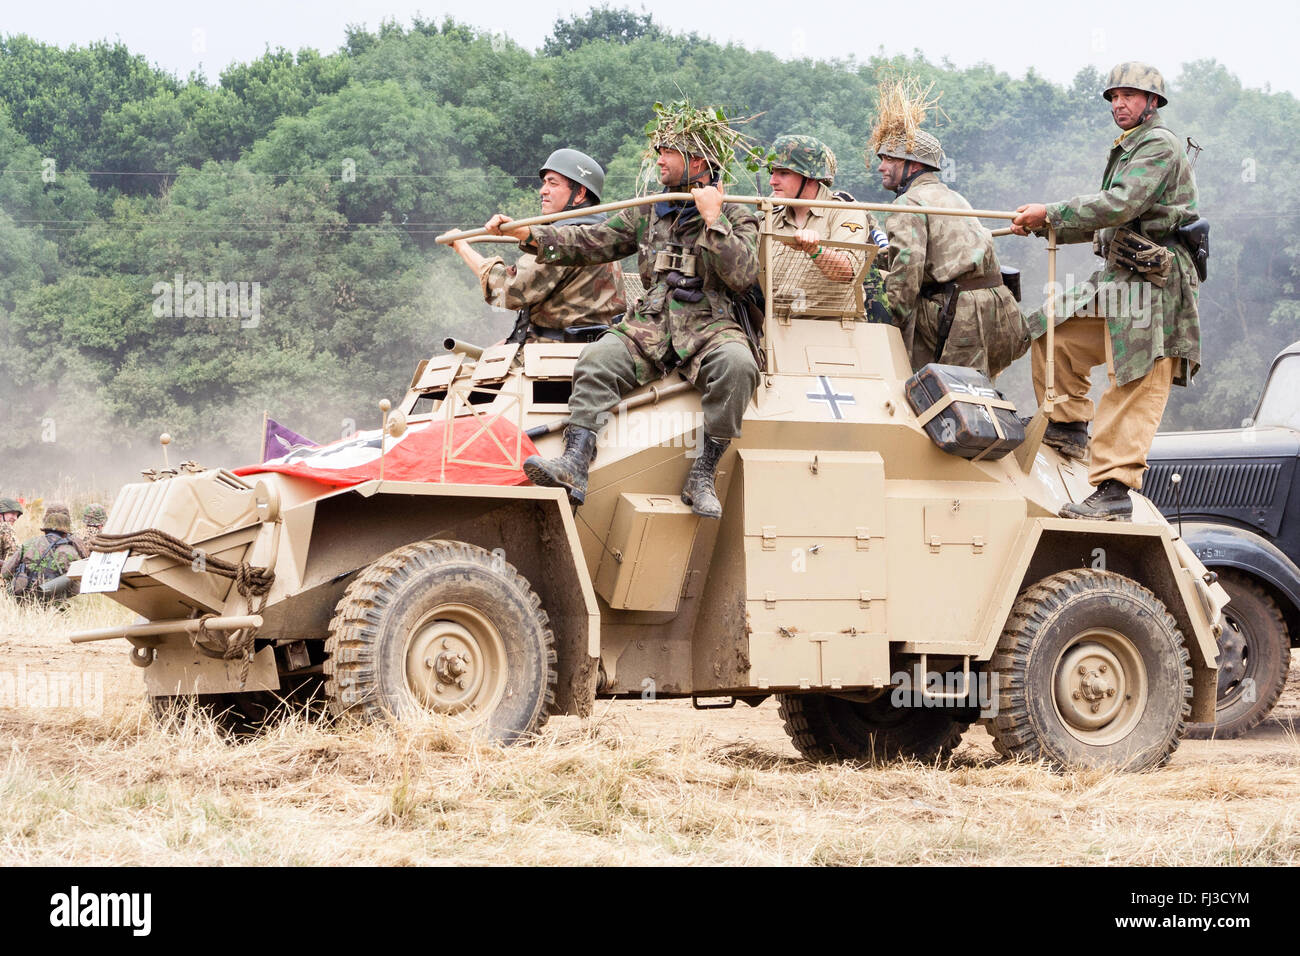 Second world war re-enactment. German Africa Korps Sdkfz 222 armoured car, with Nazi flag draped on front and soldiers - Stock Image